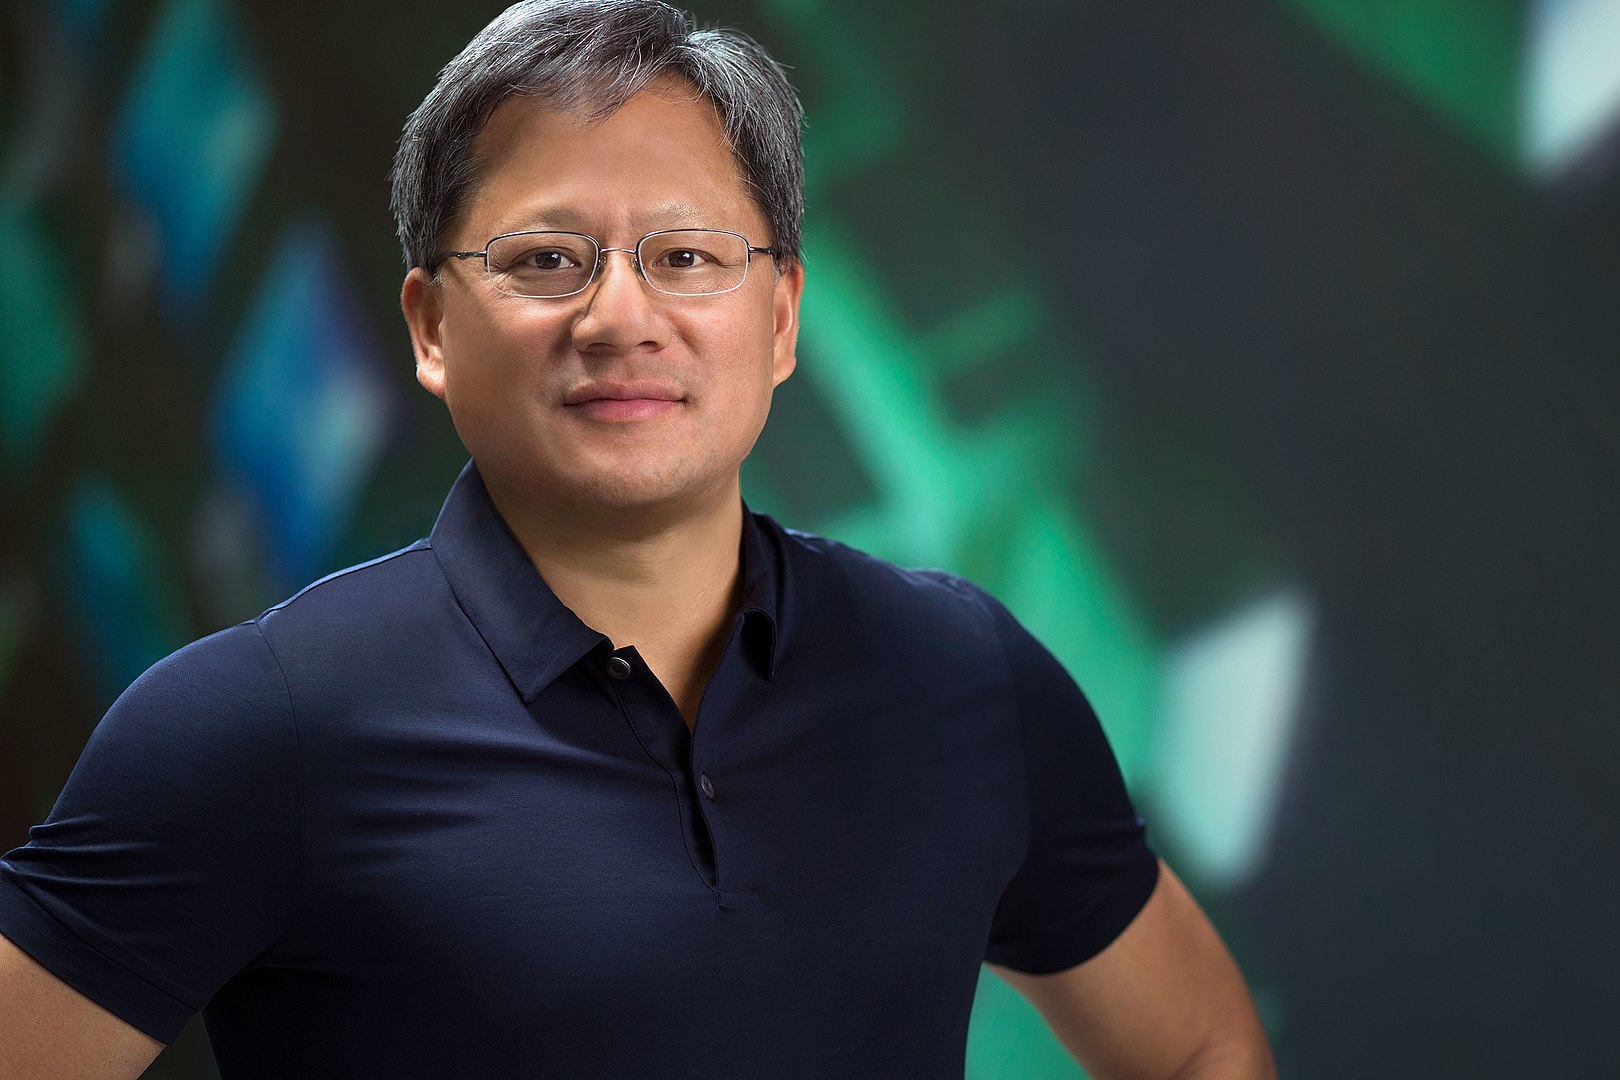 Taiwan-born American billionaire businessman and founder of NVIDIA topped the list. Photo courtesy: Wikimedia